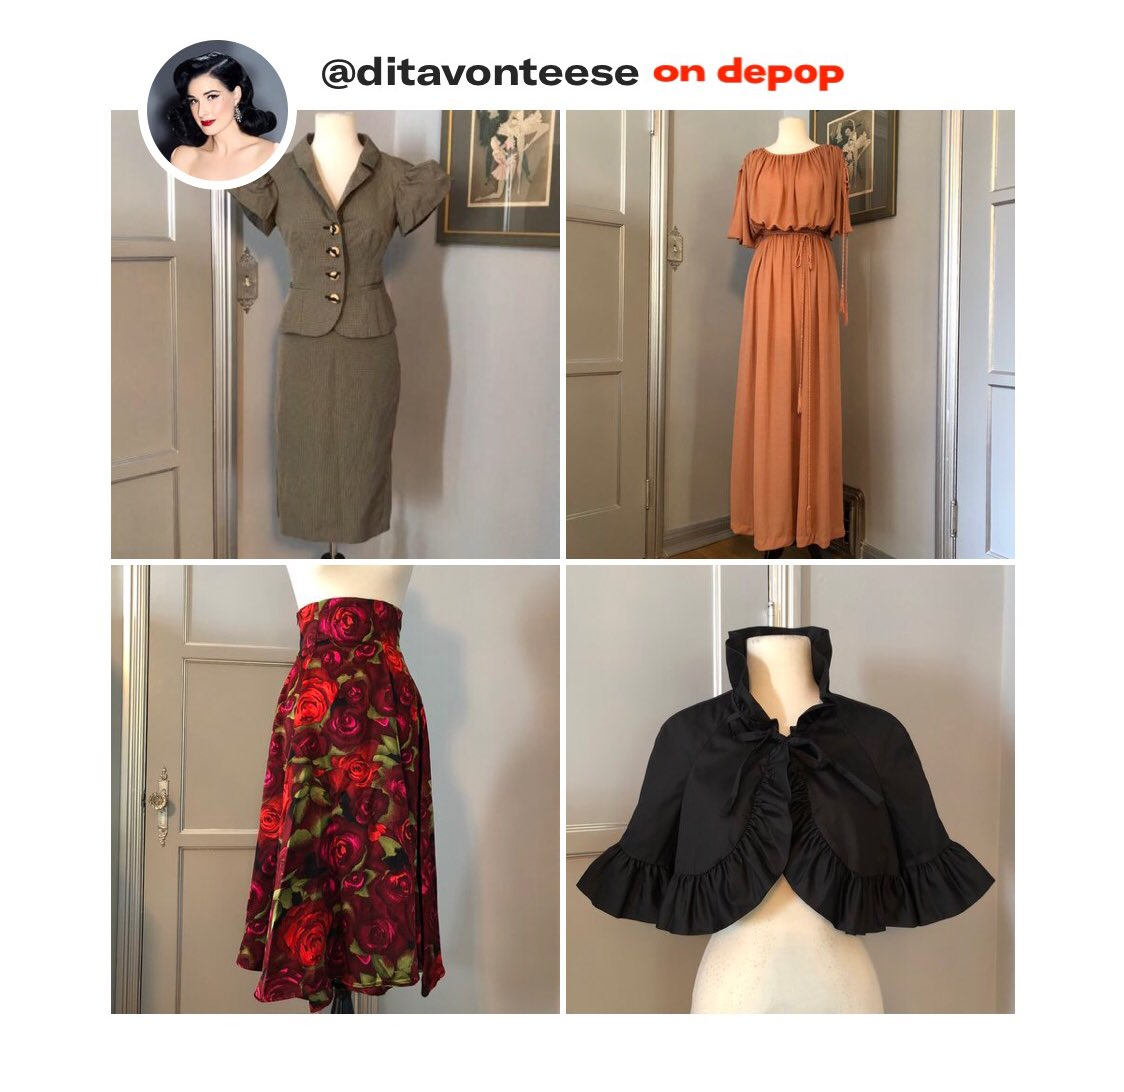 Don't miss my new @Depop listings! Shop my closet, plus #Burlesque memorabilia: https://t.co/dX4RZWq1IU https://t.co/rgzlxKKPRd